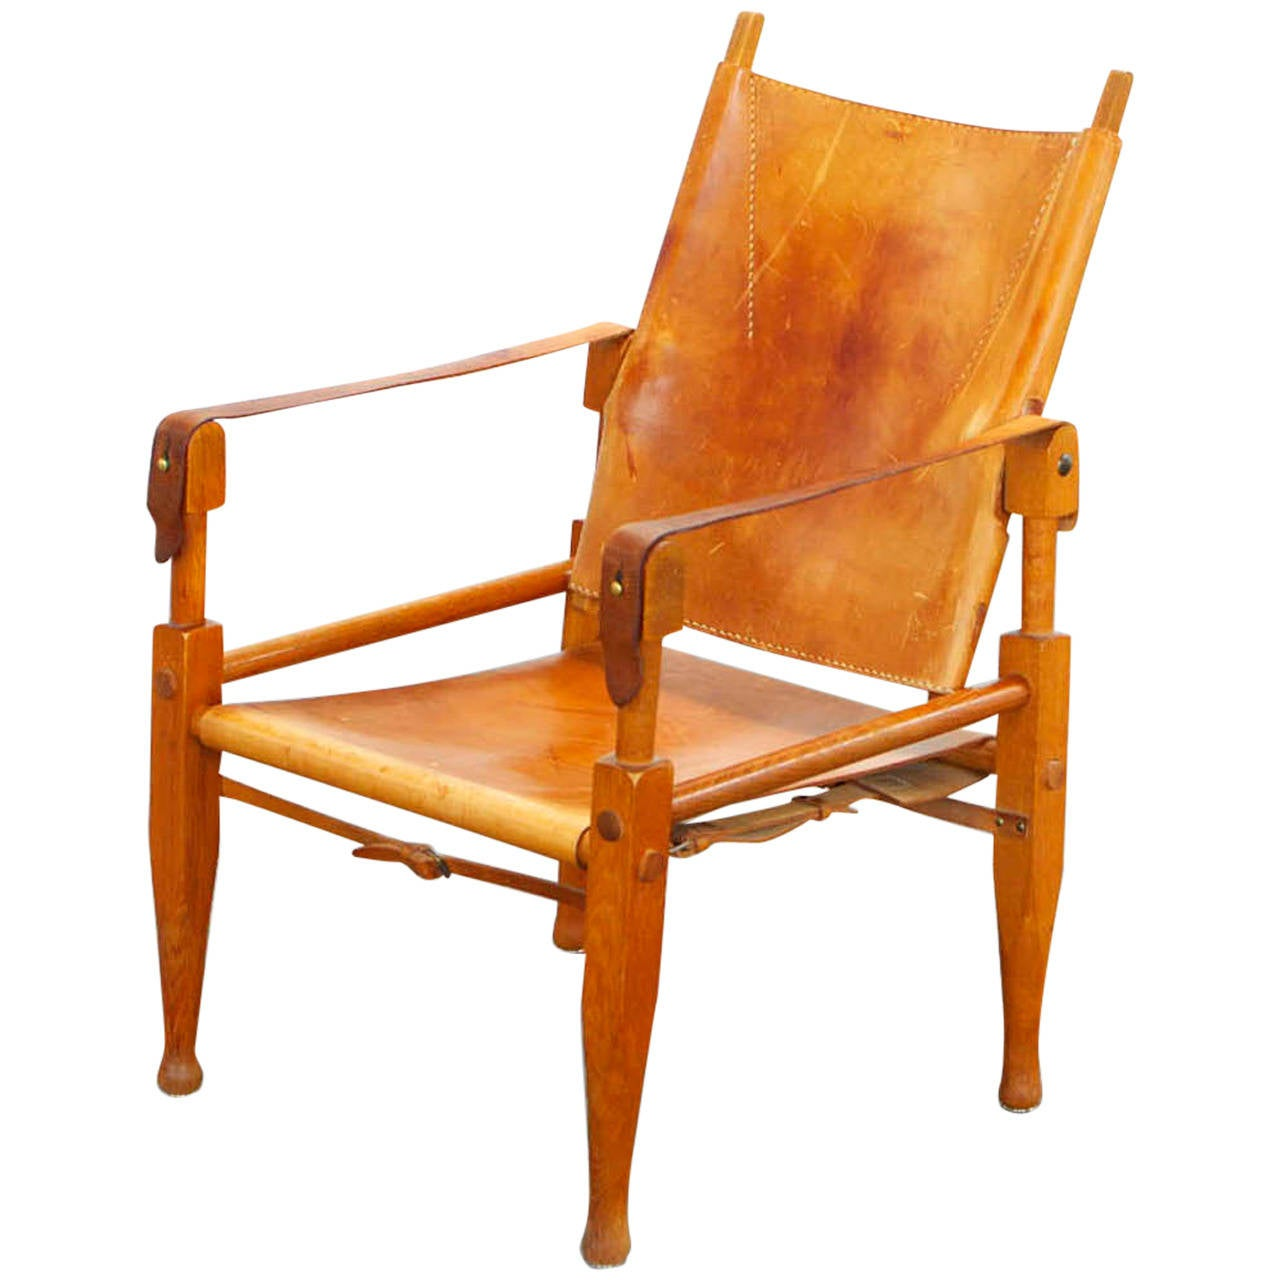 Safari Chair Wilhelm Kienzle Leather Safari Chair For Wohnbedarf Zurich